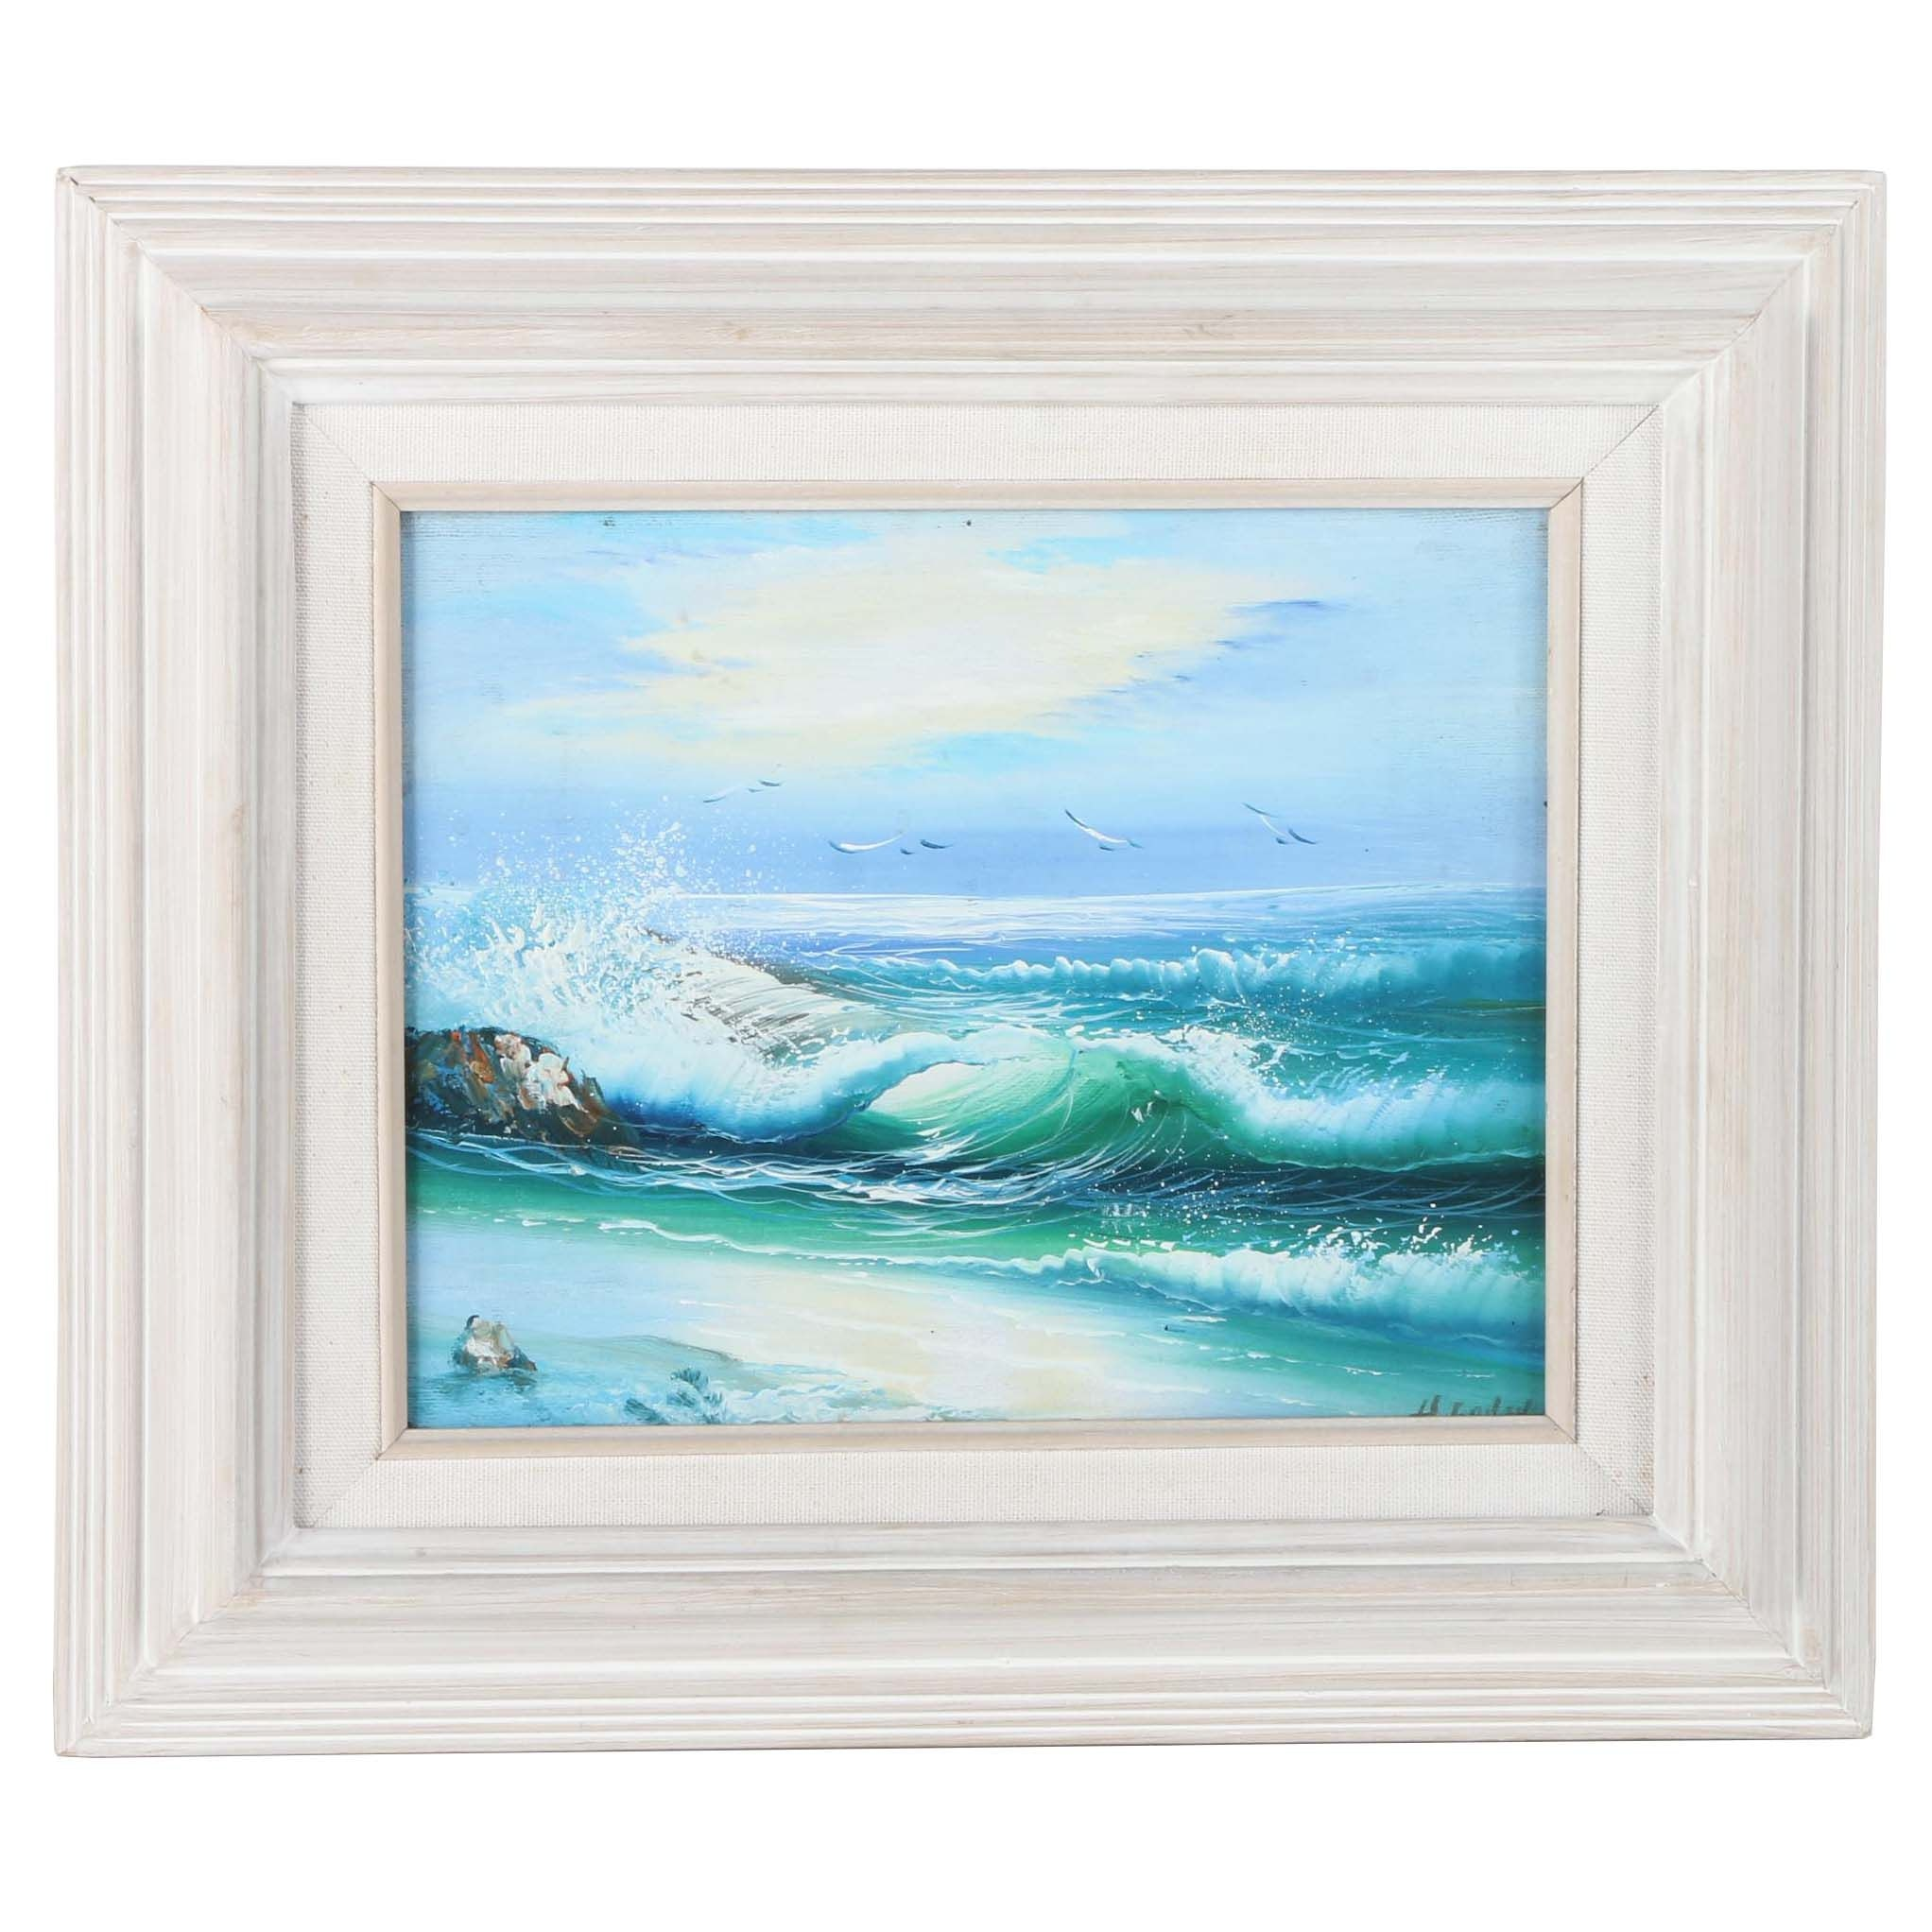 H. Gailey Landscape Oil Painting on Canvas of Breaking Waves